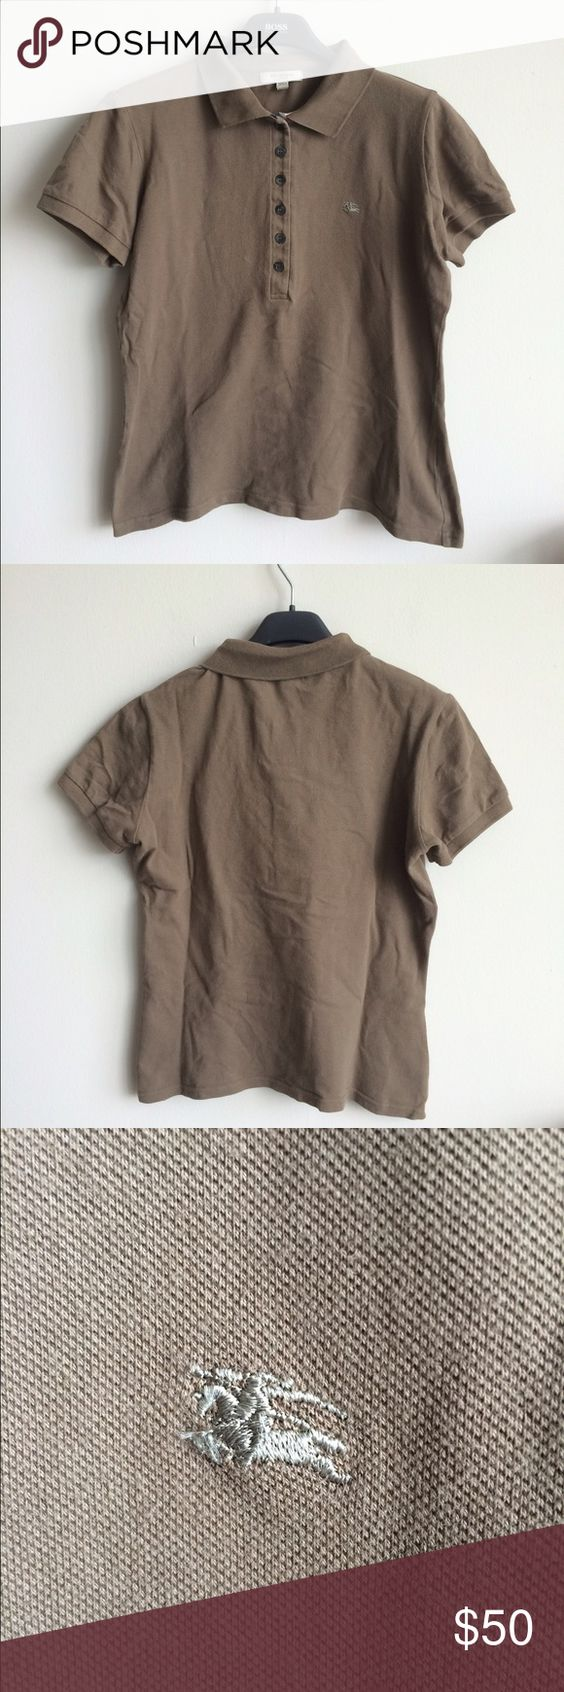 Burberry polo This is a beautiful olive green polo from Burberry London.  Top is a size medium, and like most polo style tops, it does run on the small side.  Top is 96% cotton, 4% elastine.  Top is free from rips, tears and staining. Burberry Tops Blouses